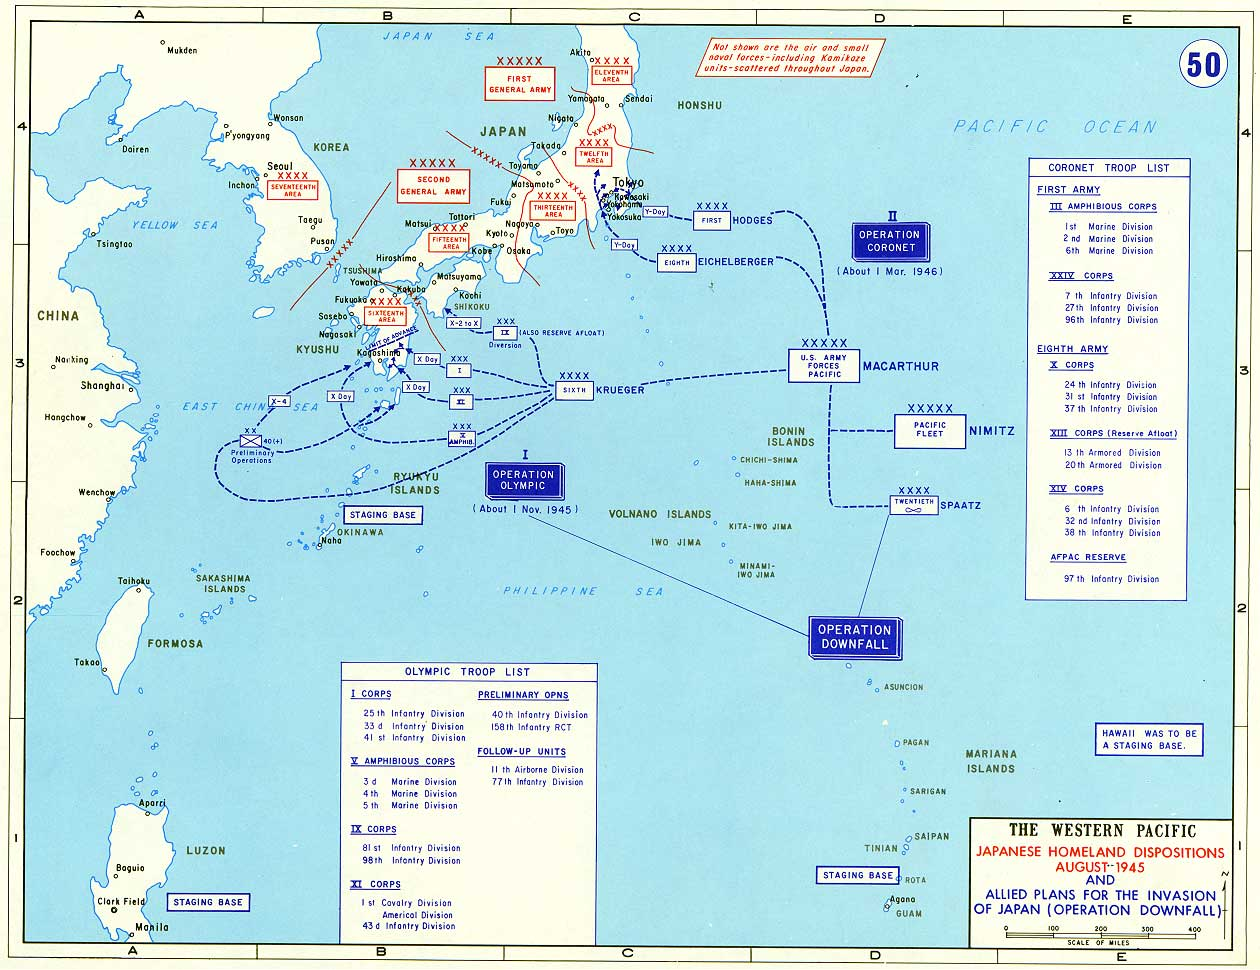 Japanese Home Islands Invasion Map